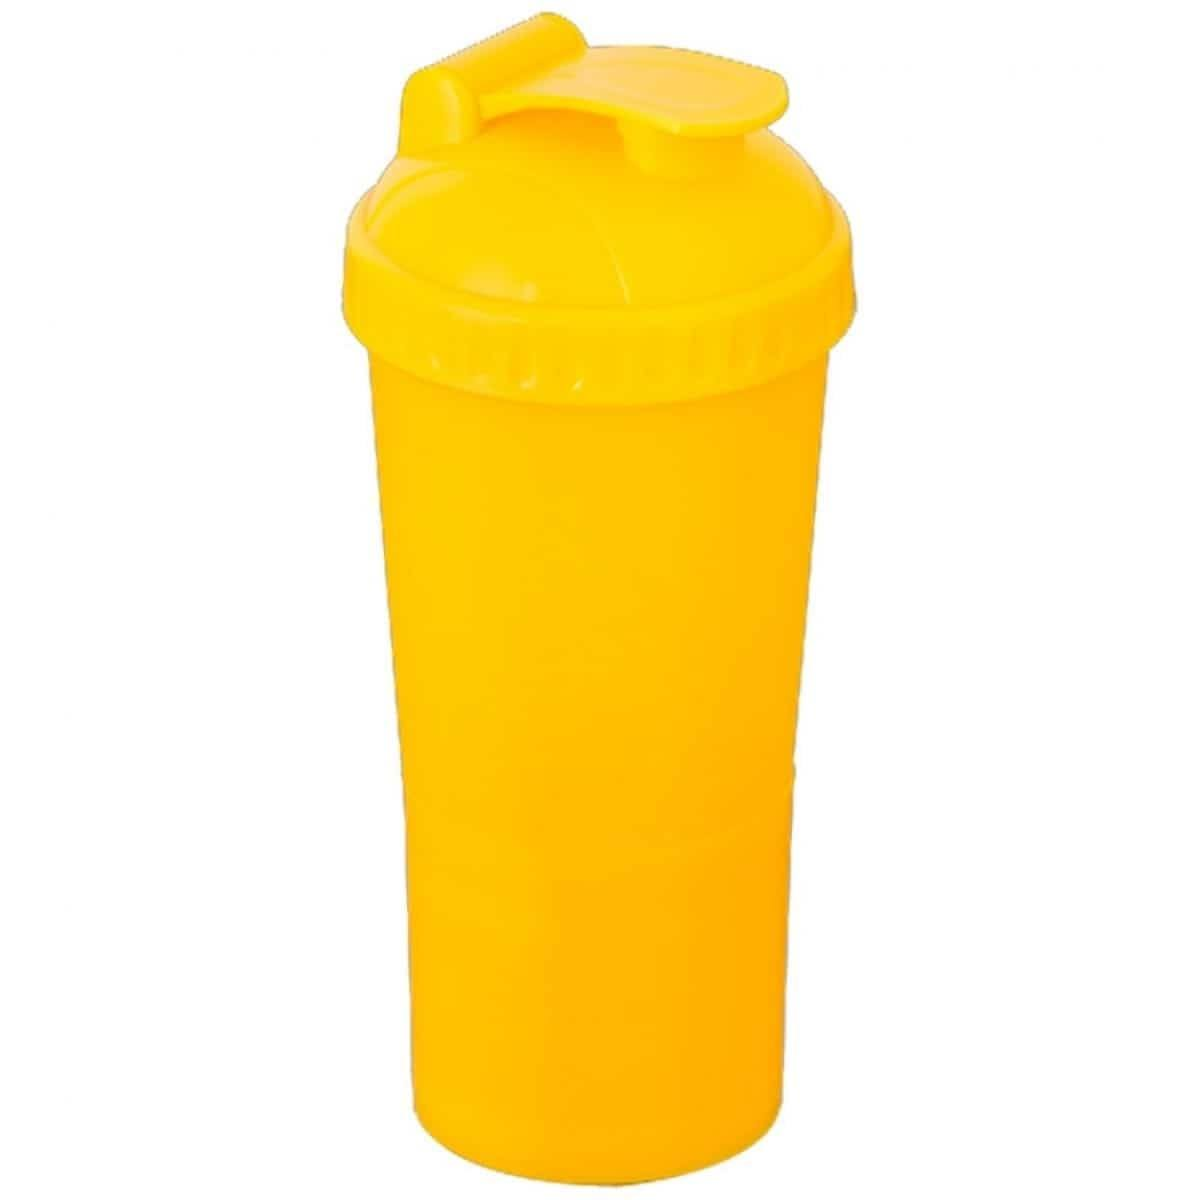 Coqueteleira Leader Blender Amarela 600Ml